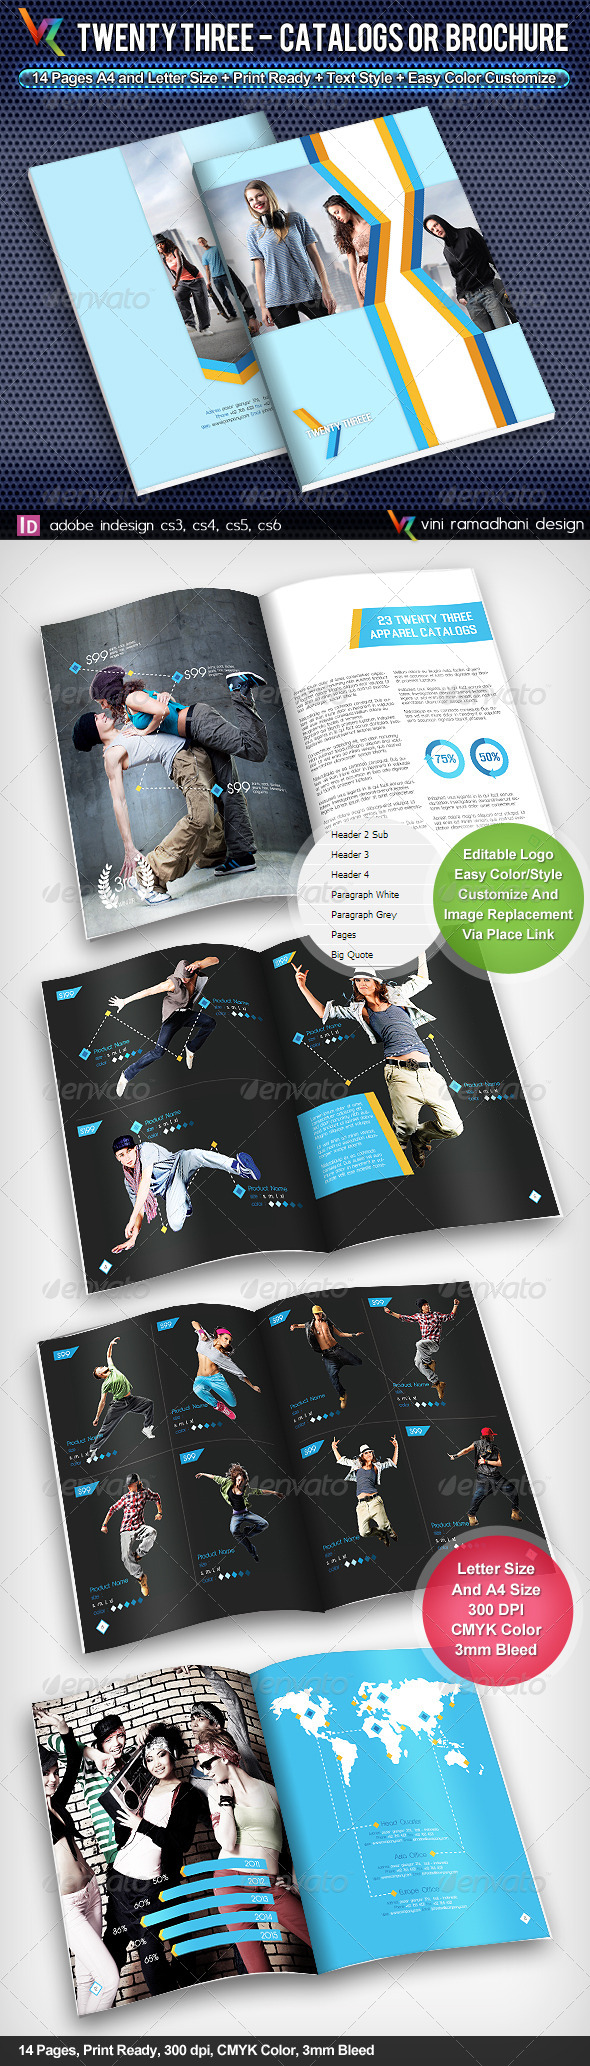 GraphicRiver Twenty Three Catalogs Or Brochure